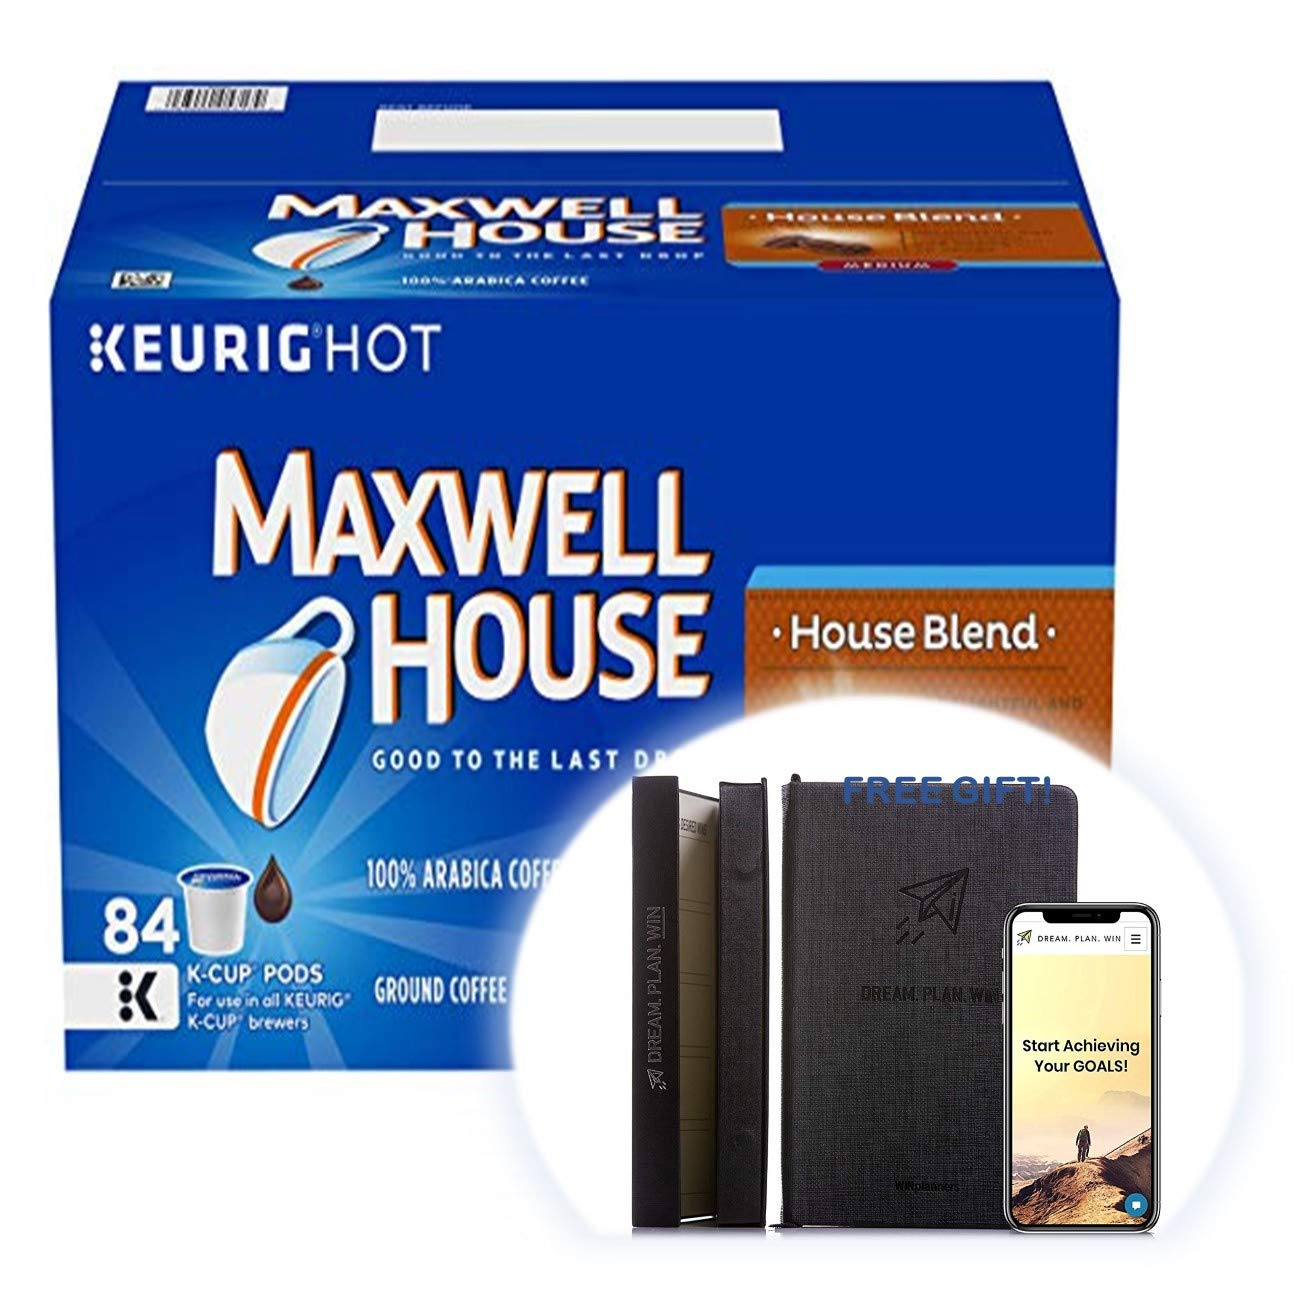 Maxwell House House Blend K-Cup Coffee Pods, 150 ct Box + FREE GIFT - PRODUCTIVITY PLANNER - Attain Your Dreams! (150 ct) by MAXWELL HOUSE (Image #1)